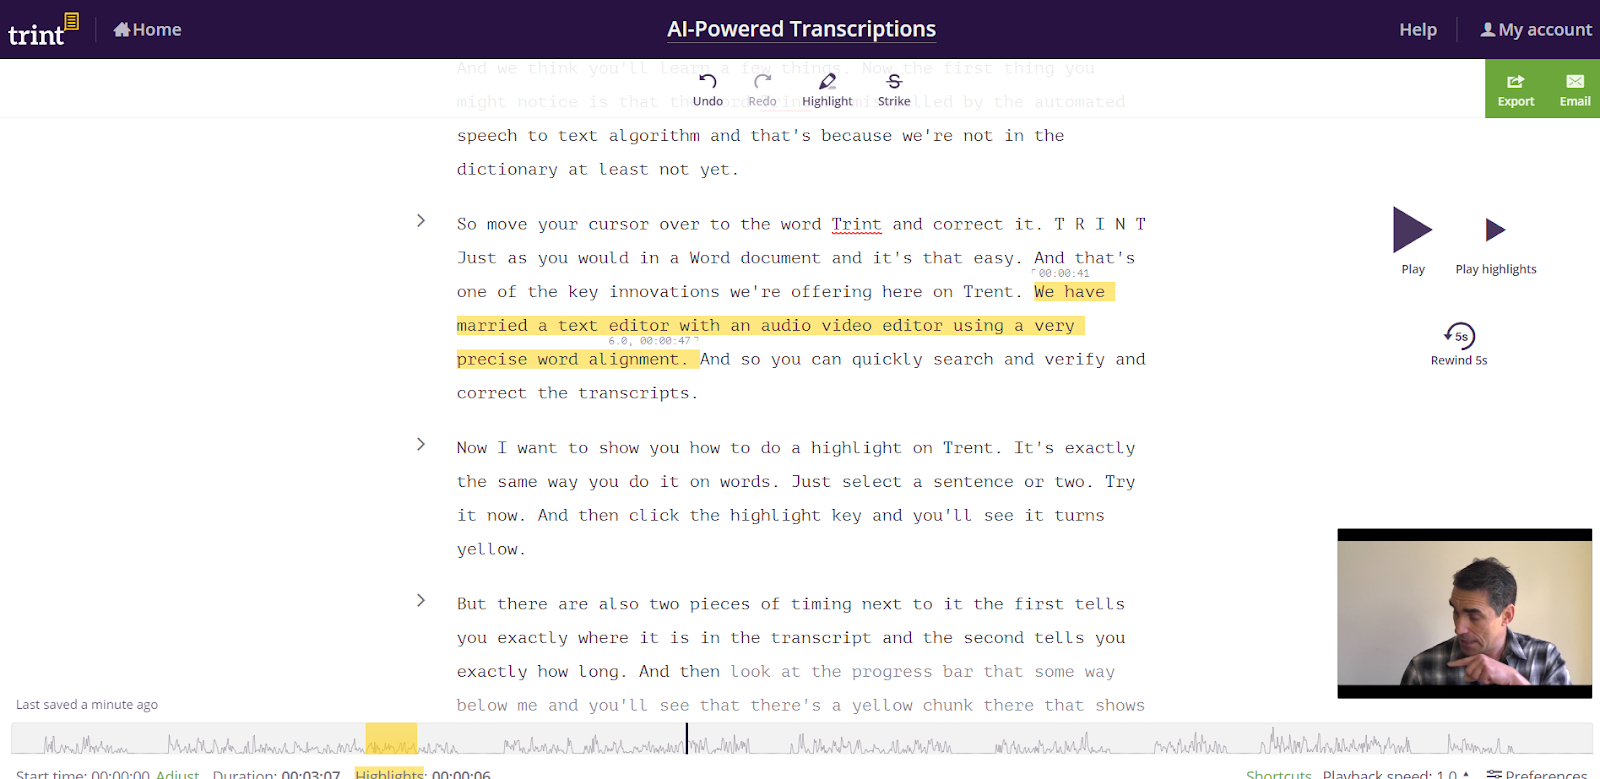 Manually transcribing takes too long. Automating it is easy.